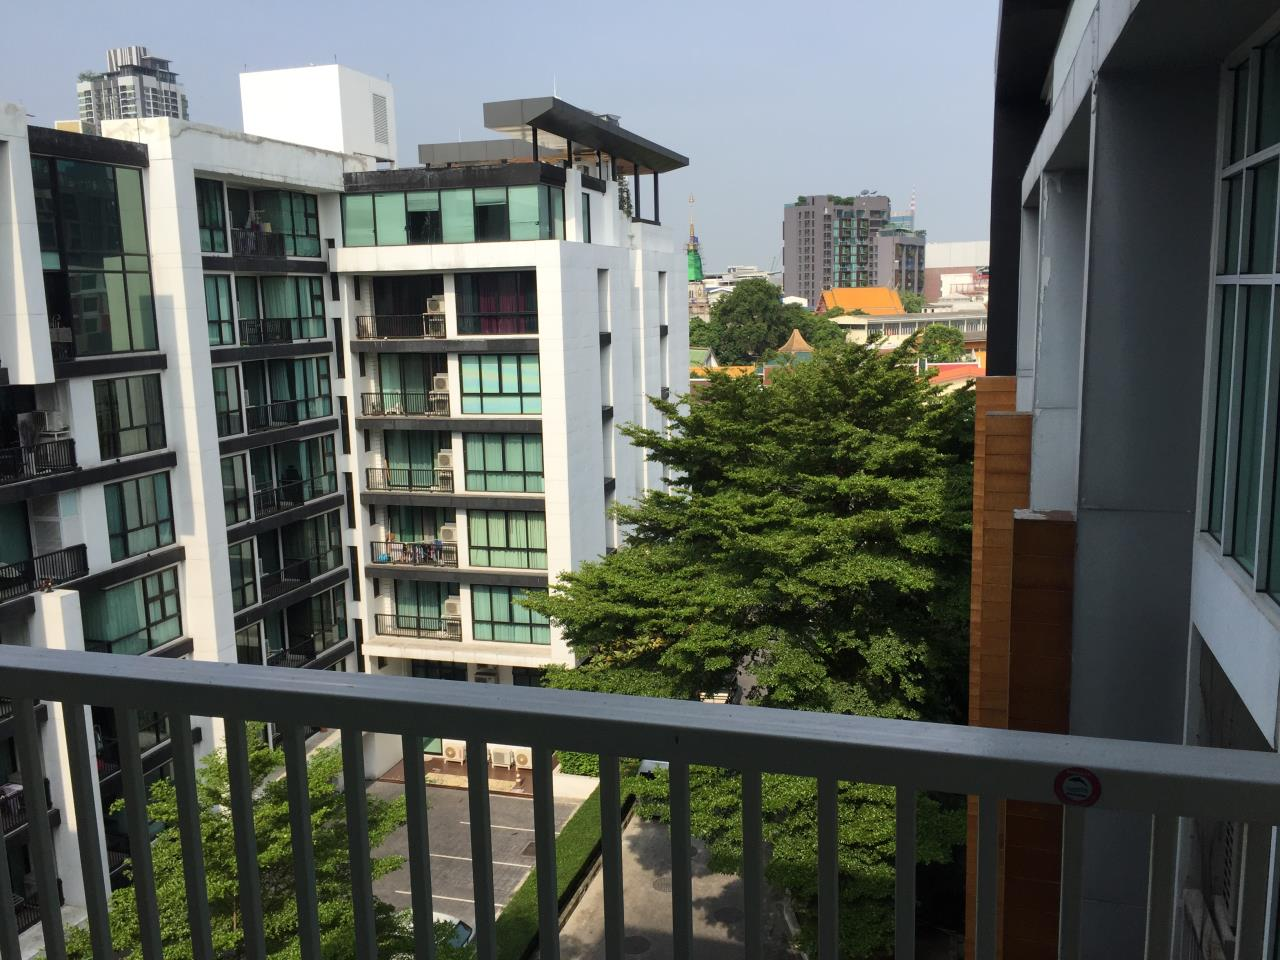 RE/MAX Exclusive Agency's D65 Condominium 2 Bedrooms, 70 Sqm., For Rent 27,000 THB!! 15